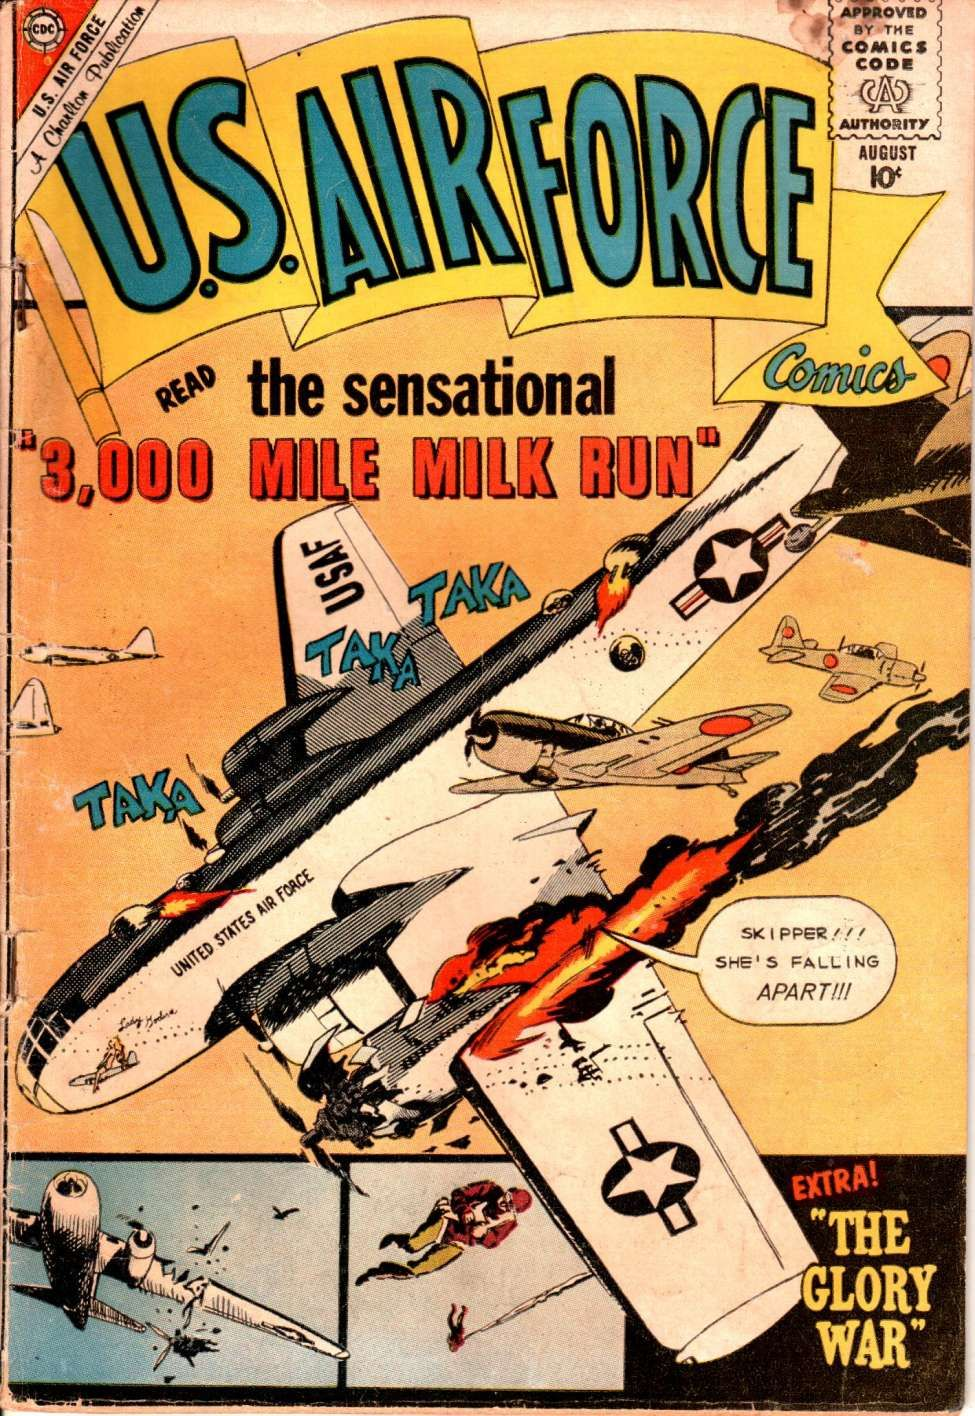 "The sensational ""3,000 Mile Milk Run,"" - U.S. Air Force Comics #11 (August 1960) - Cover by Sam Glanzman"